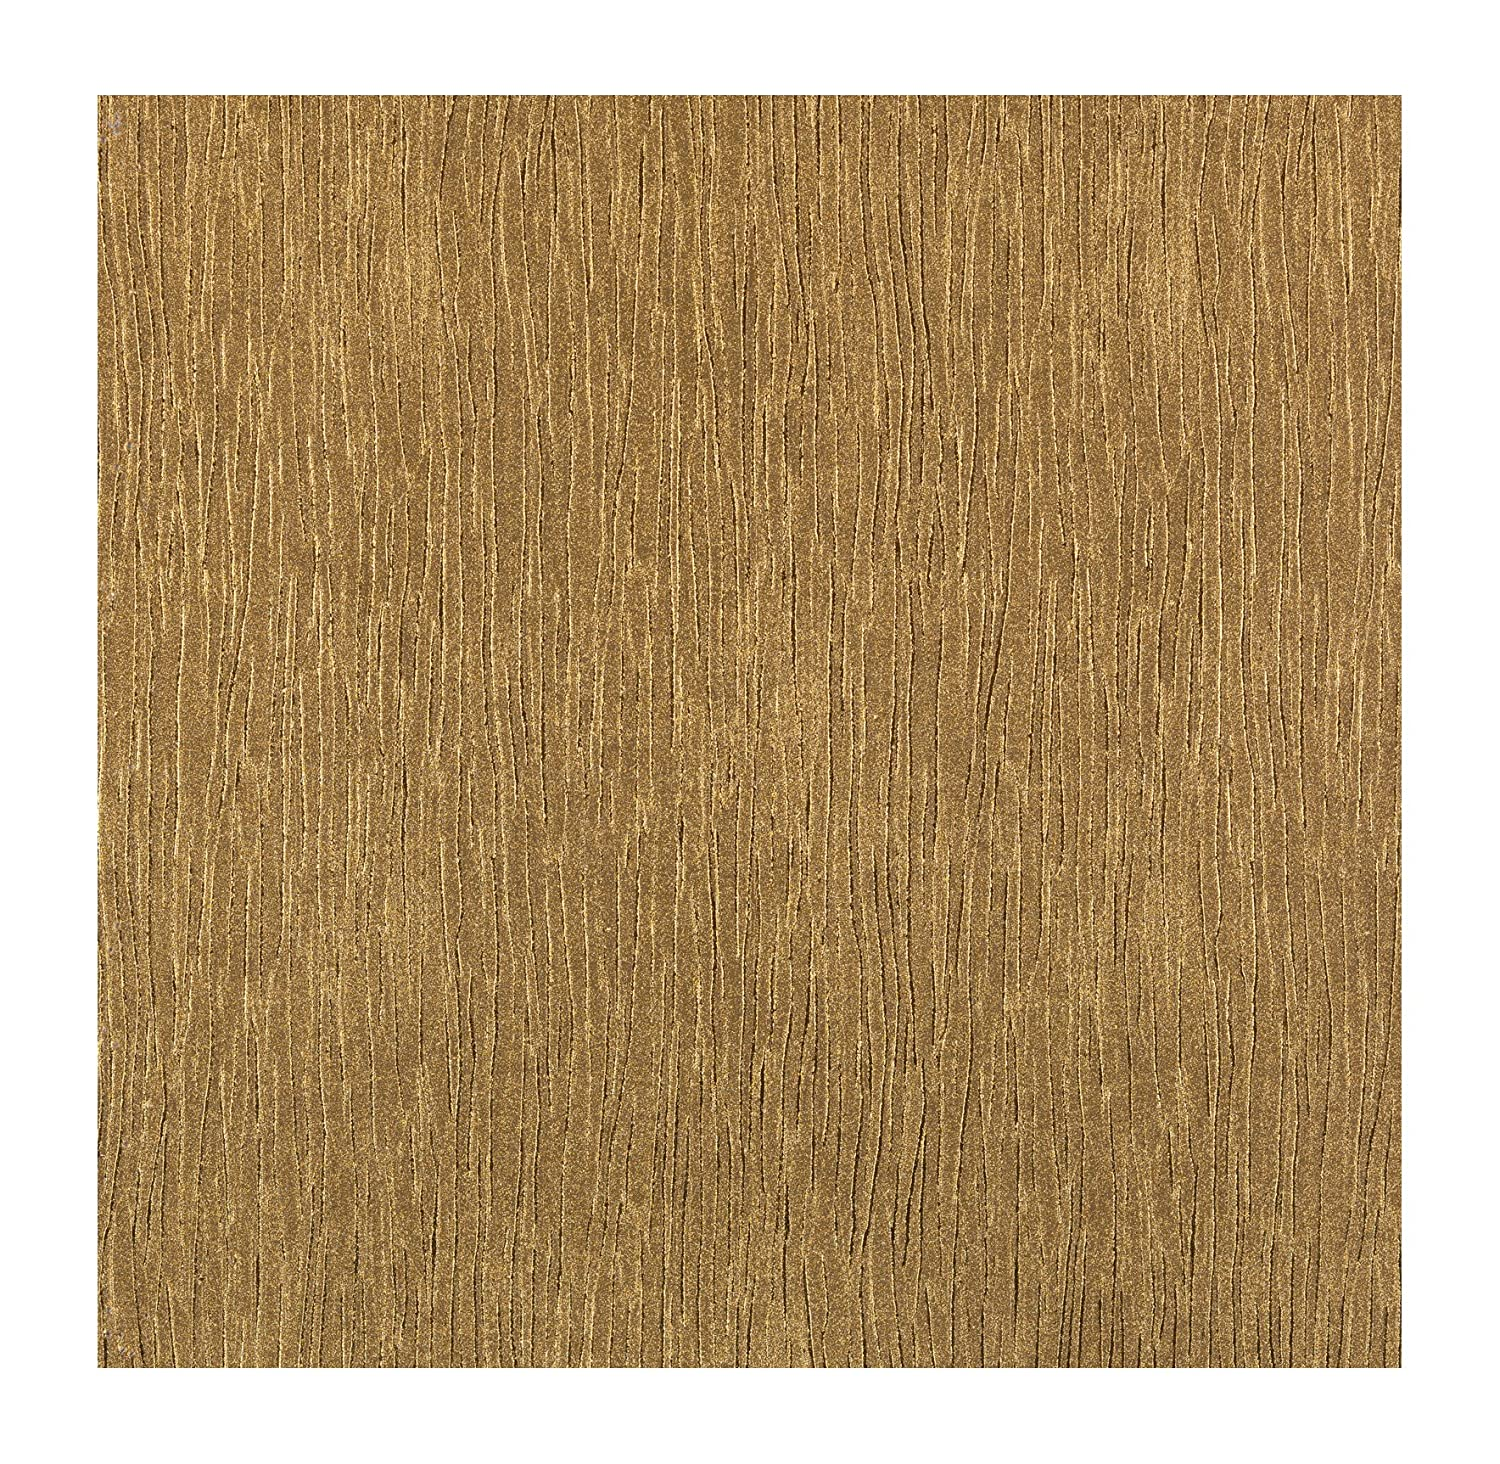 8-Inch x 10-Inch York Wallcoverings 991307SMP Bling Hollywood Wallpaper Memo Sample